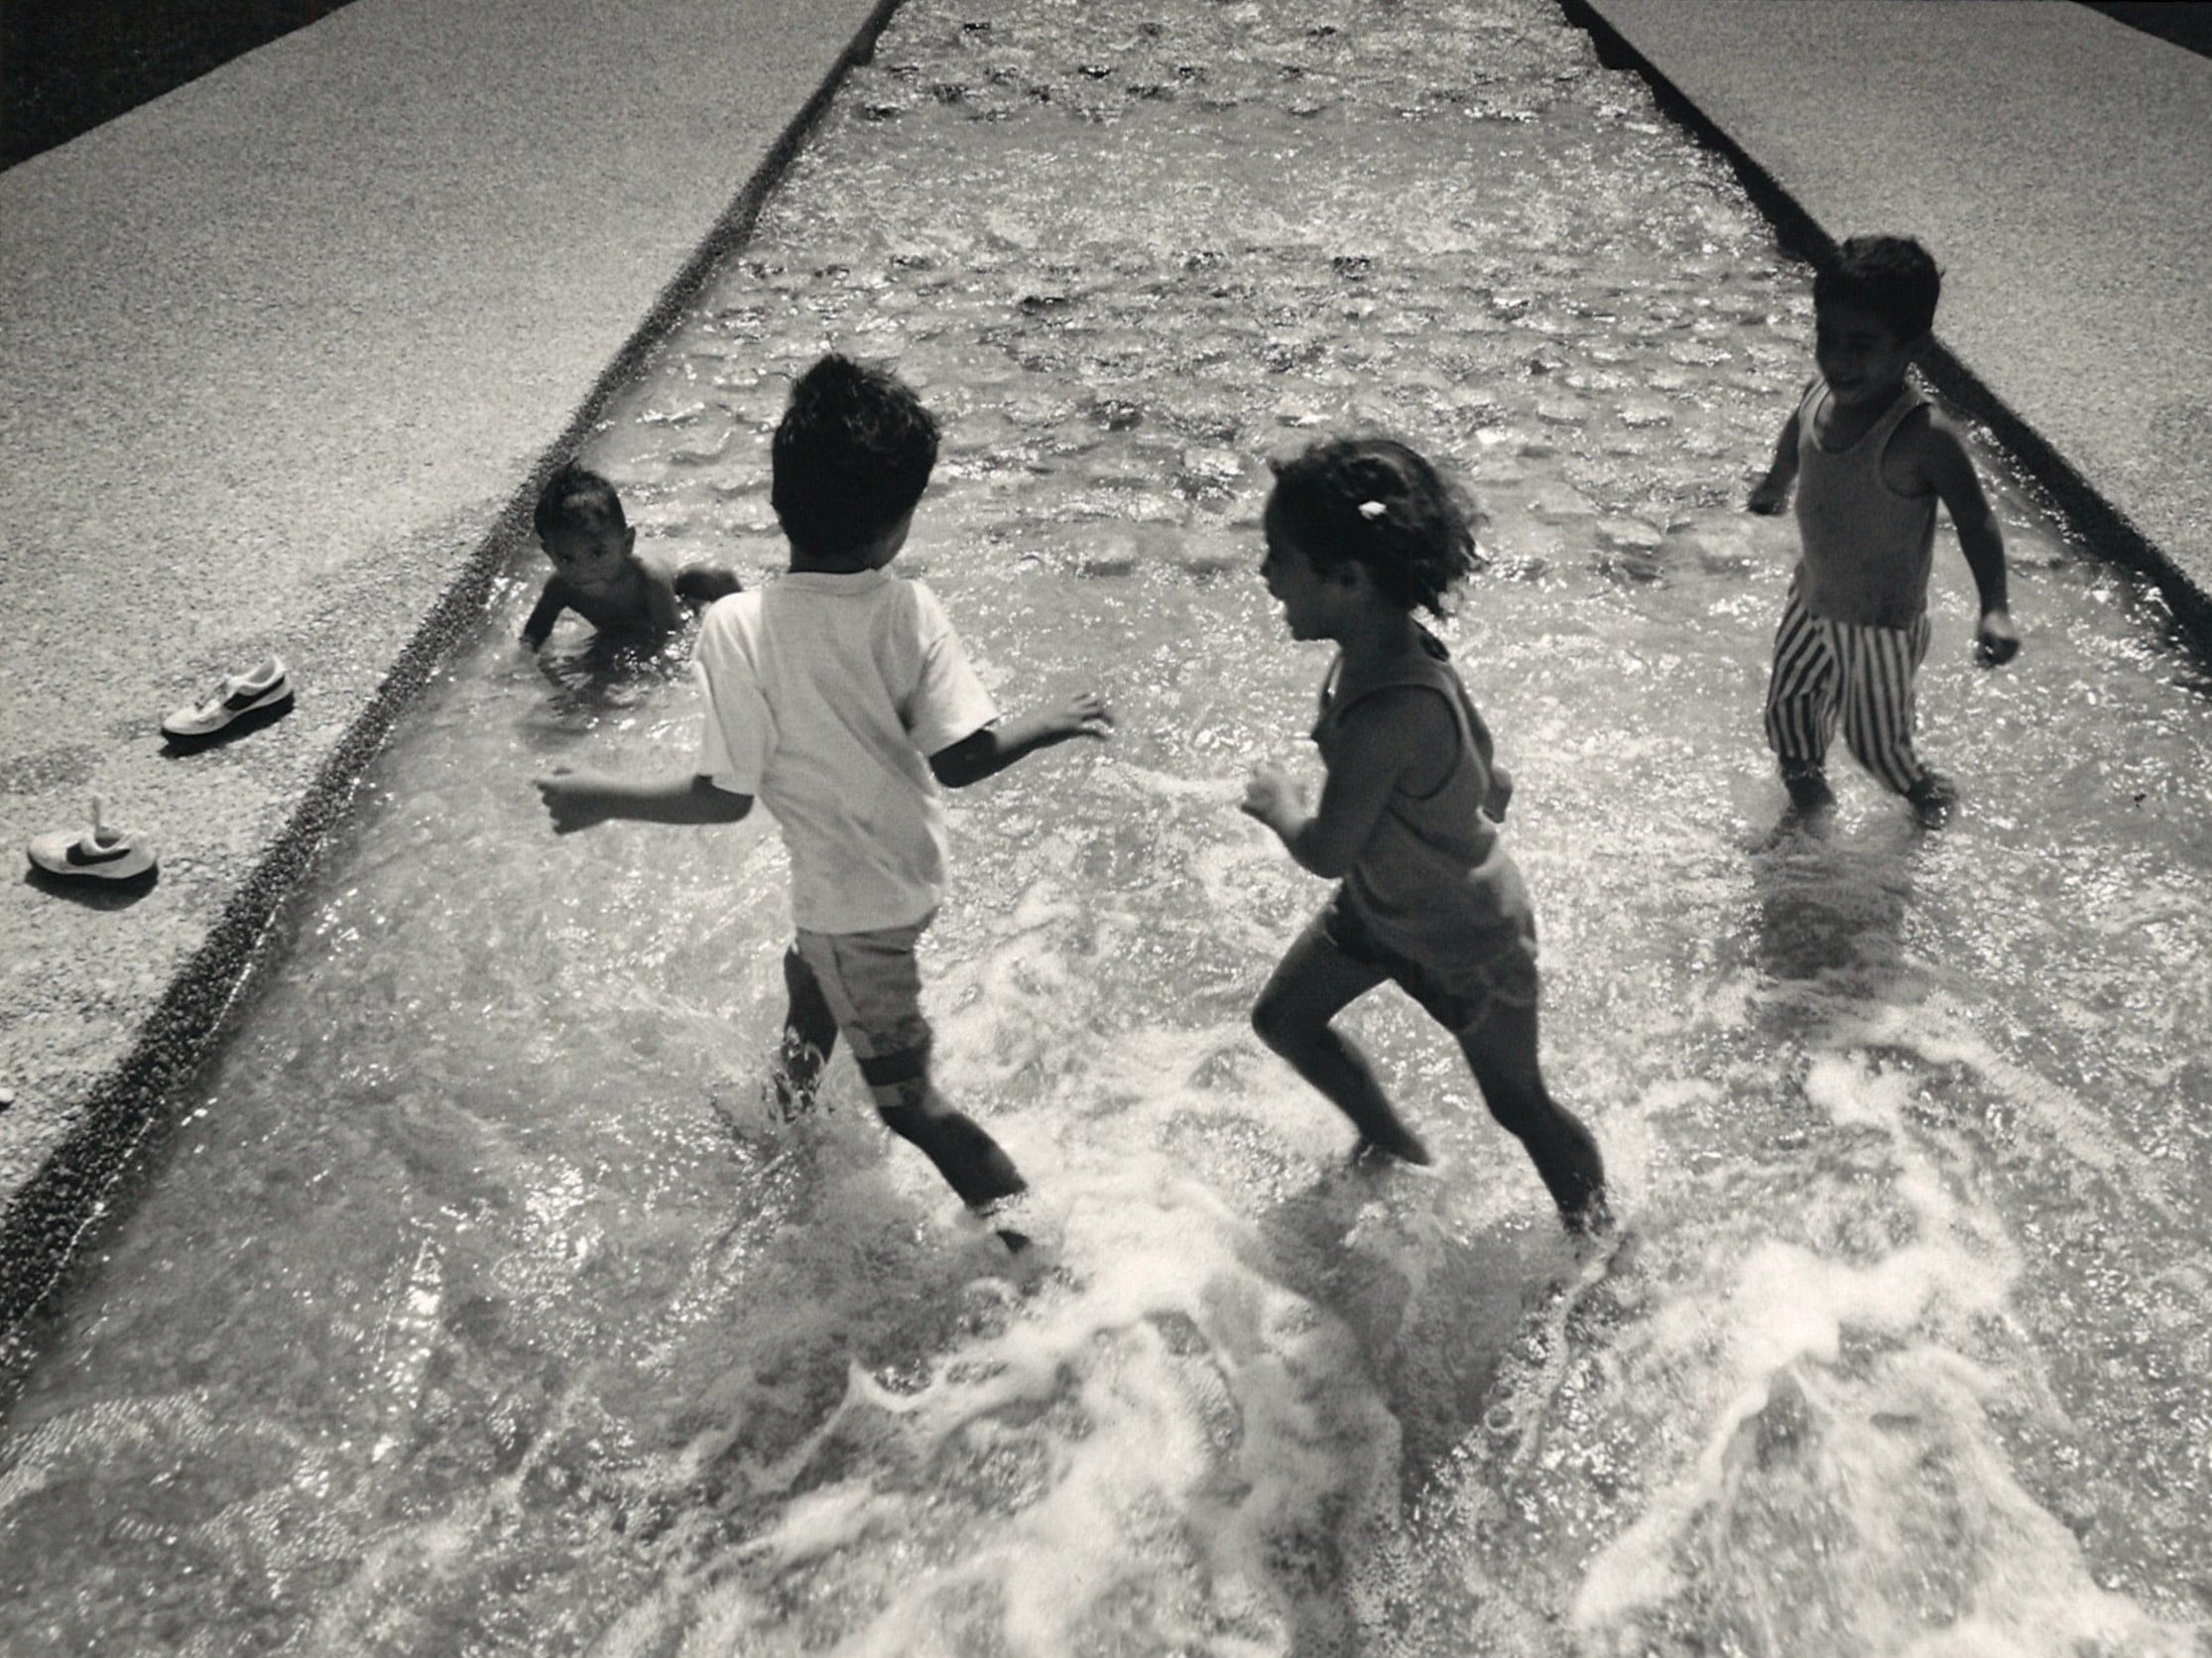 Mario Arredondo, 2, (left to right), Marco Lucas, 5, Marina Lucas, 4, and Mario Lucas, 3, play in the Watergarden in front of the Art Museum of South Texas on June 28, 1988.